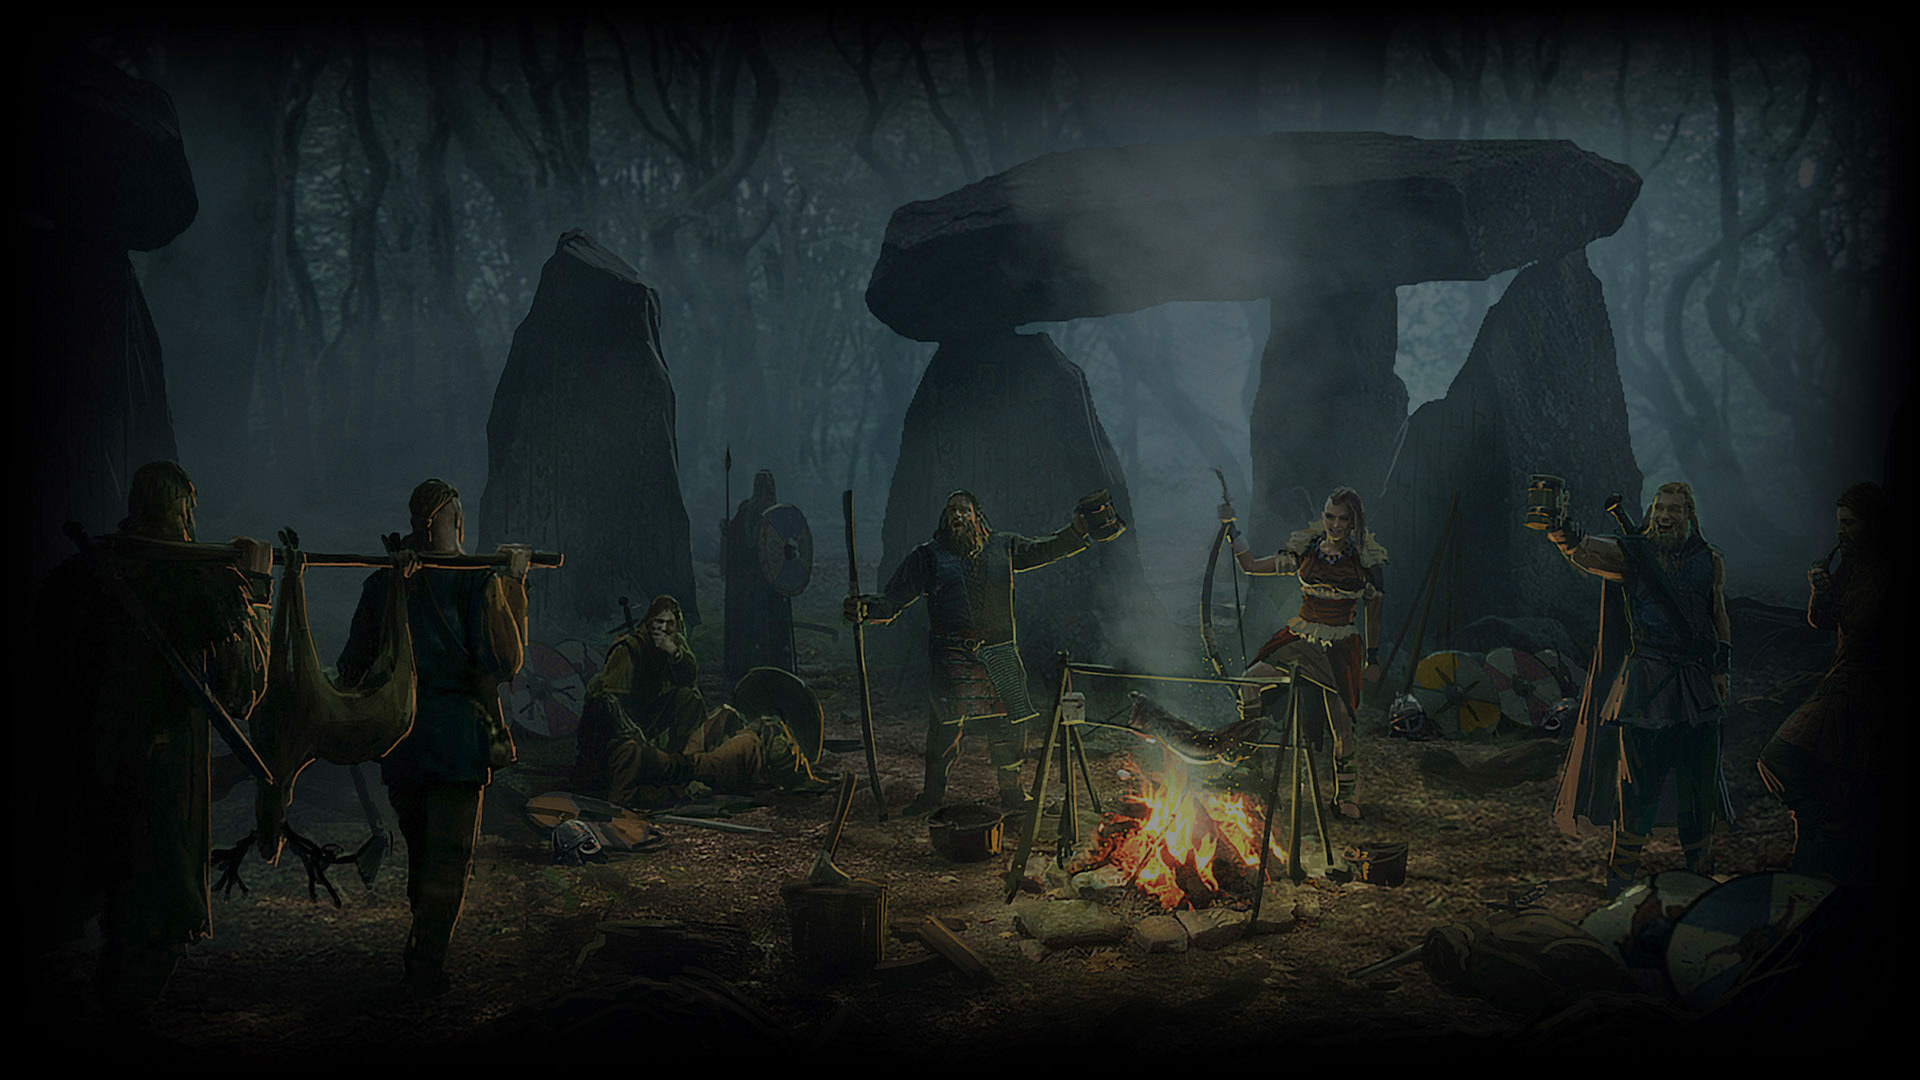 Viking Camp Wallpaper from Expeditions Viking   gamepressurecom 1920x1080